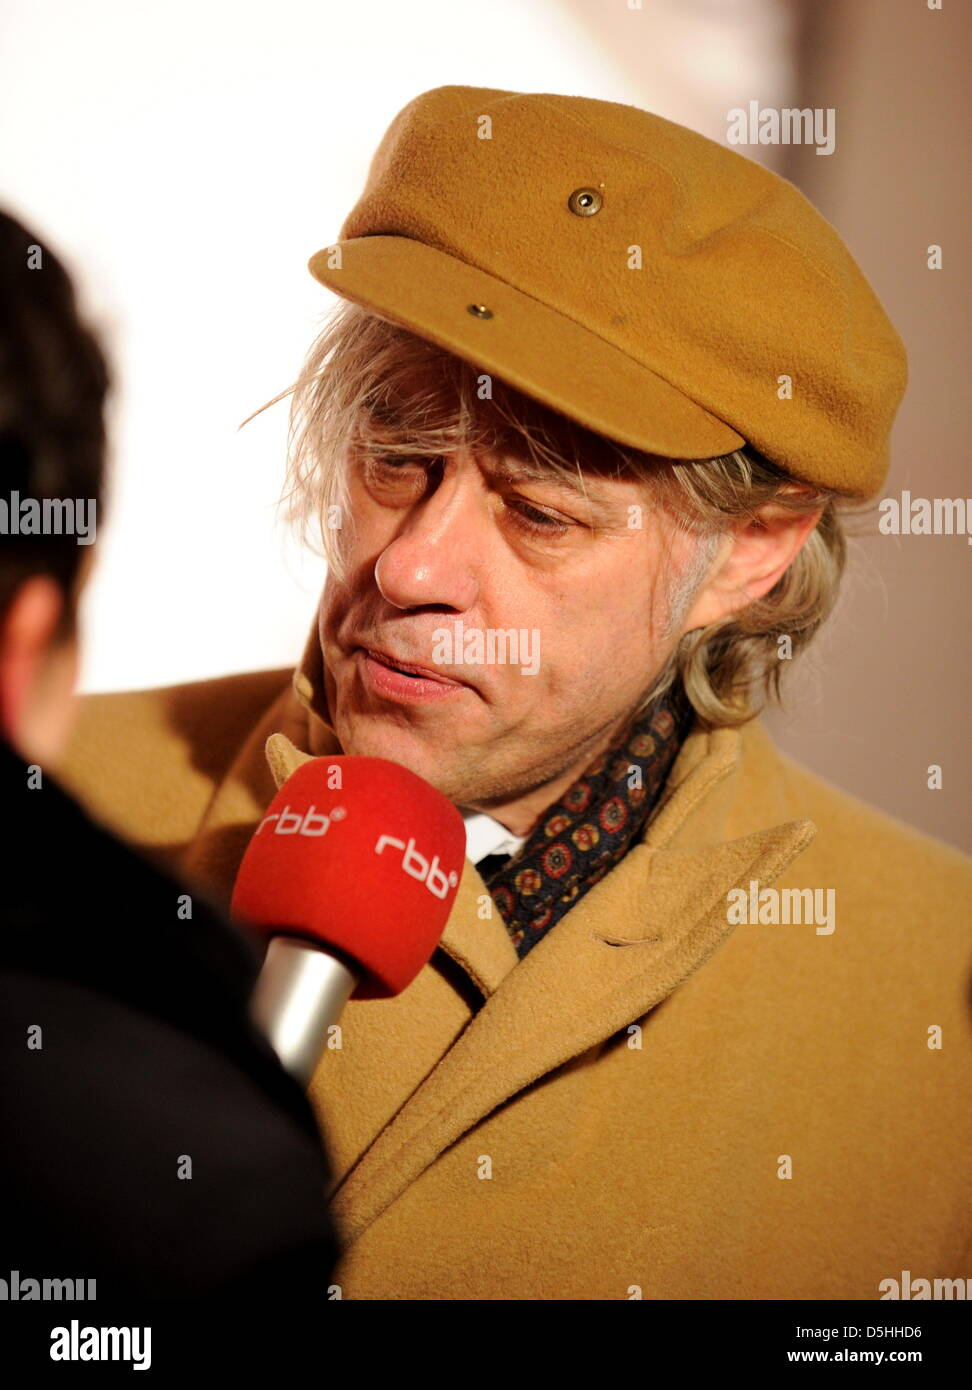 Musician Bob Geldorf arrives for the Cinema for Peace charity gala in Berlin, Germany, Monday, 15 February 2010. - Stock Image